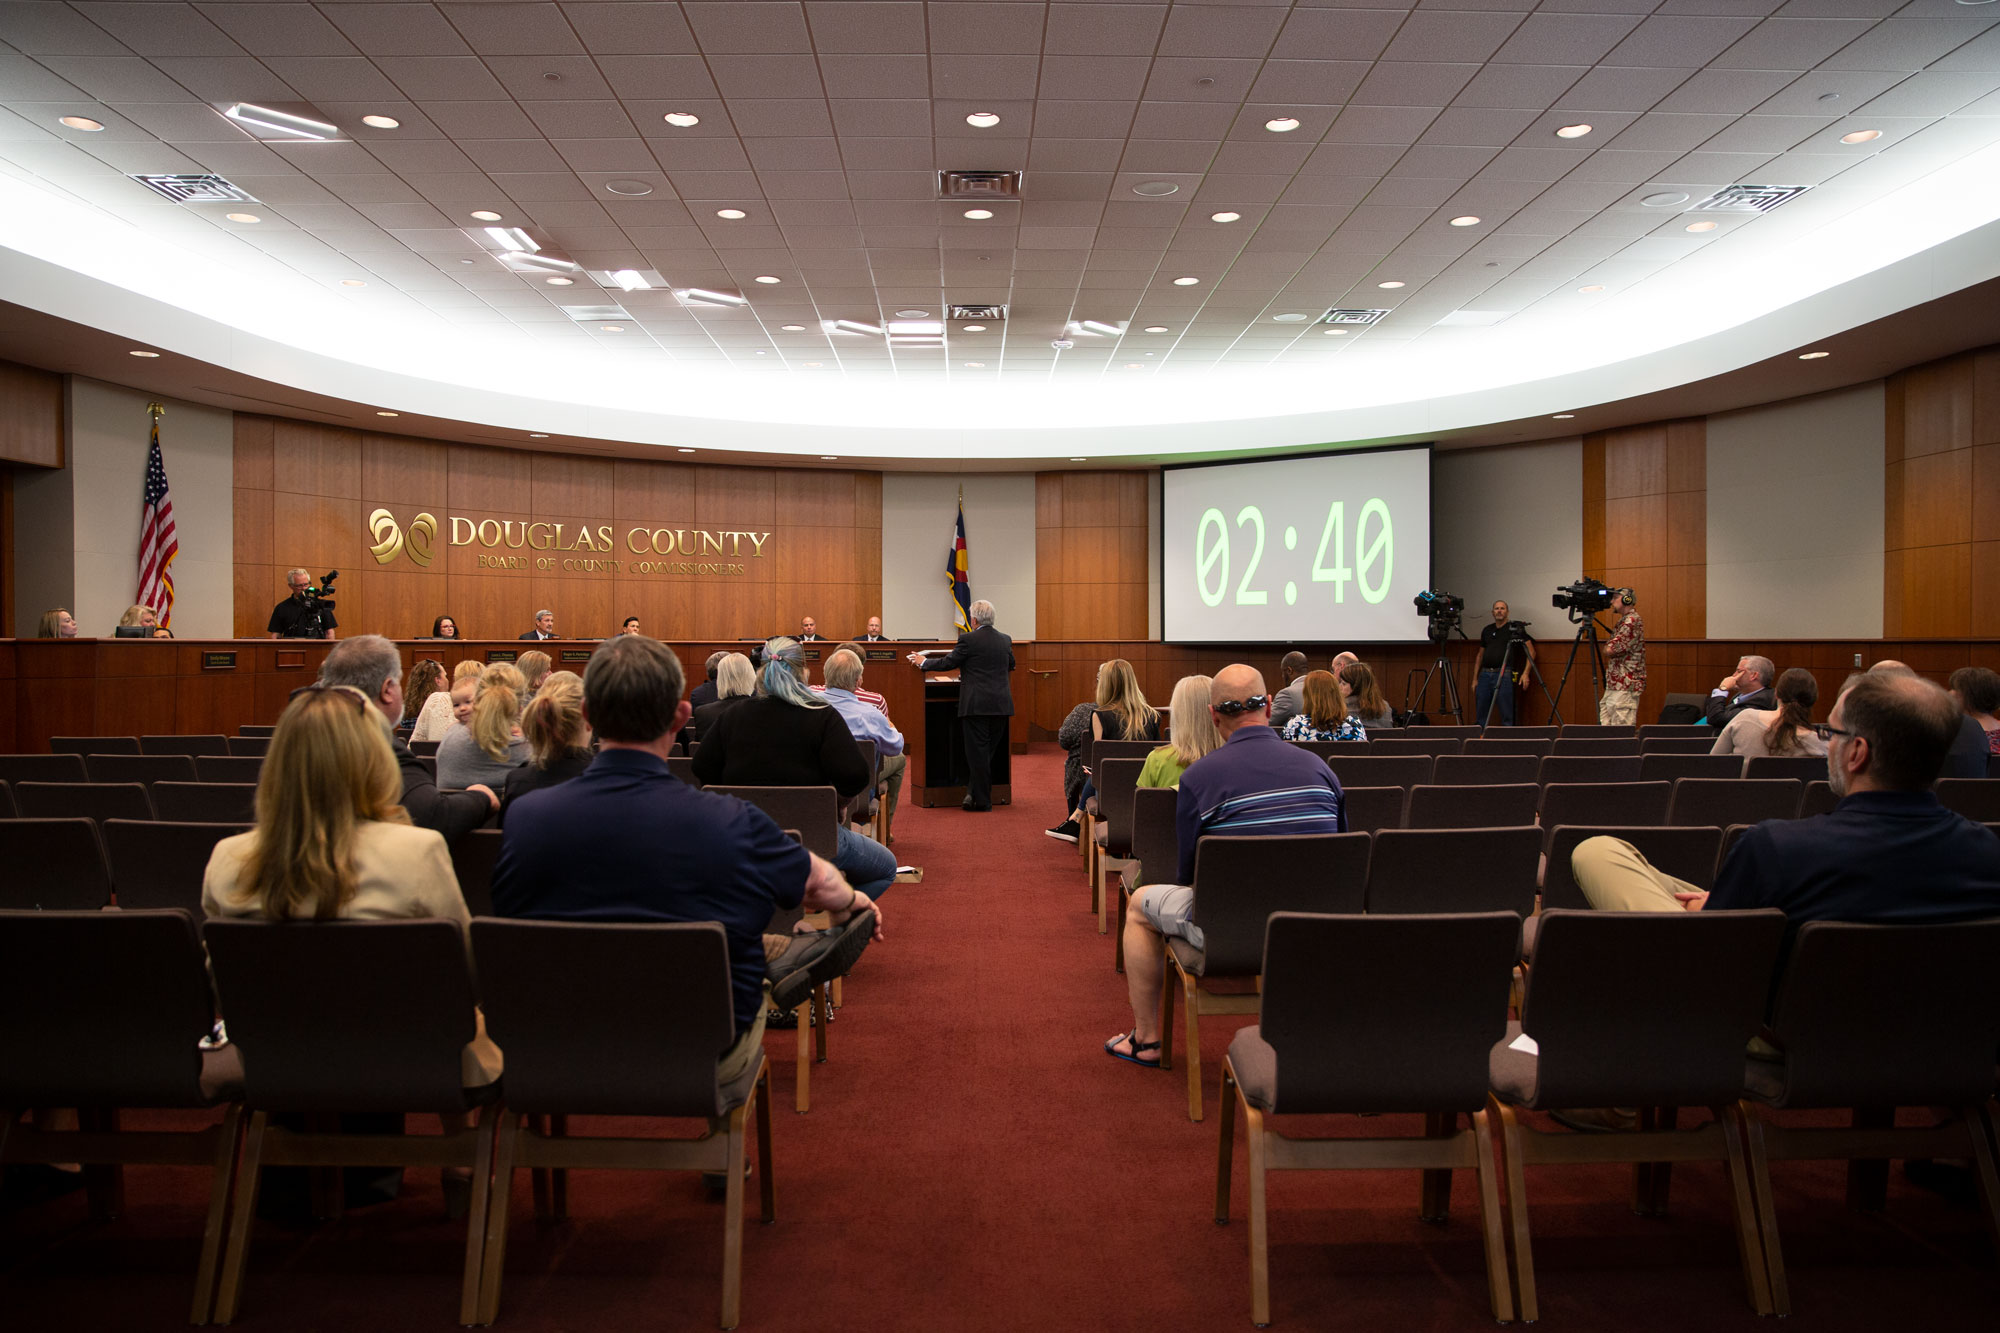 <p>Audience members listen to a public speaker at a Monday, May 13, Douglas County Commissioners meeting to discuss a budget proposal to fund school safety.</p>